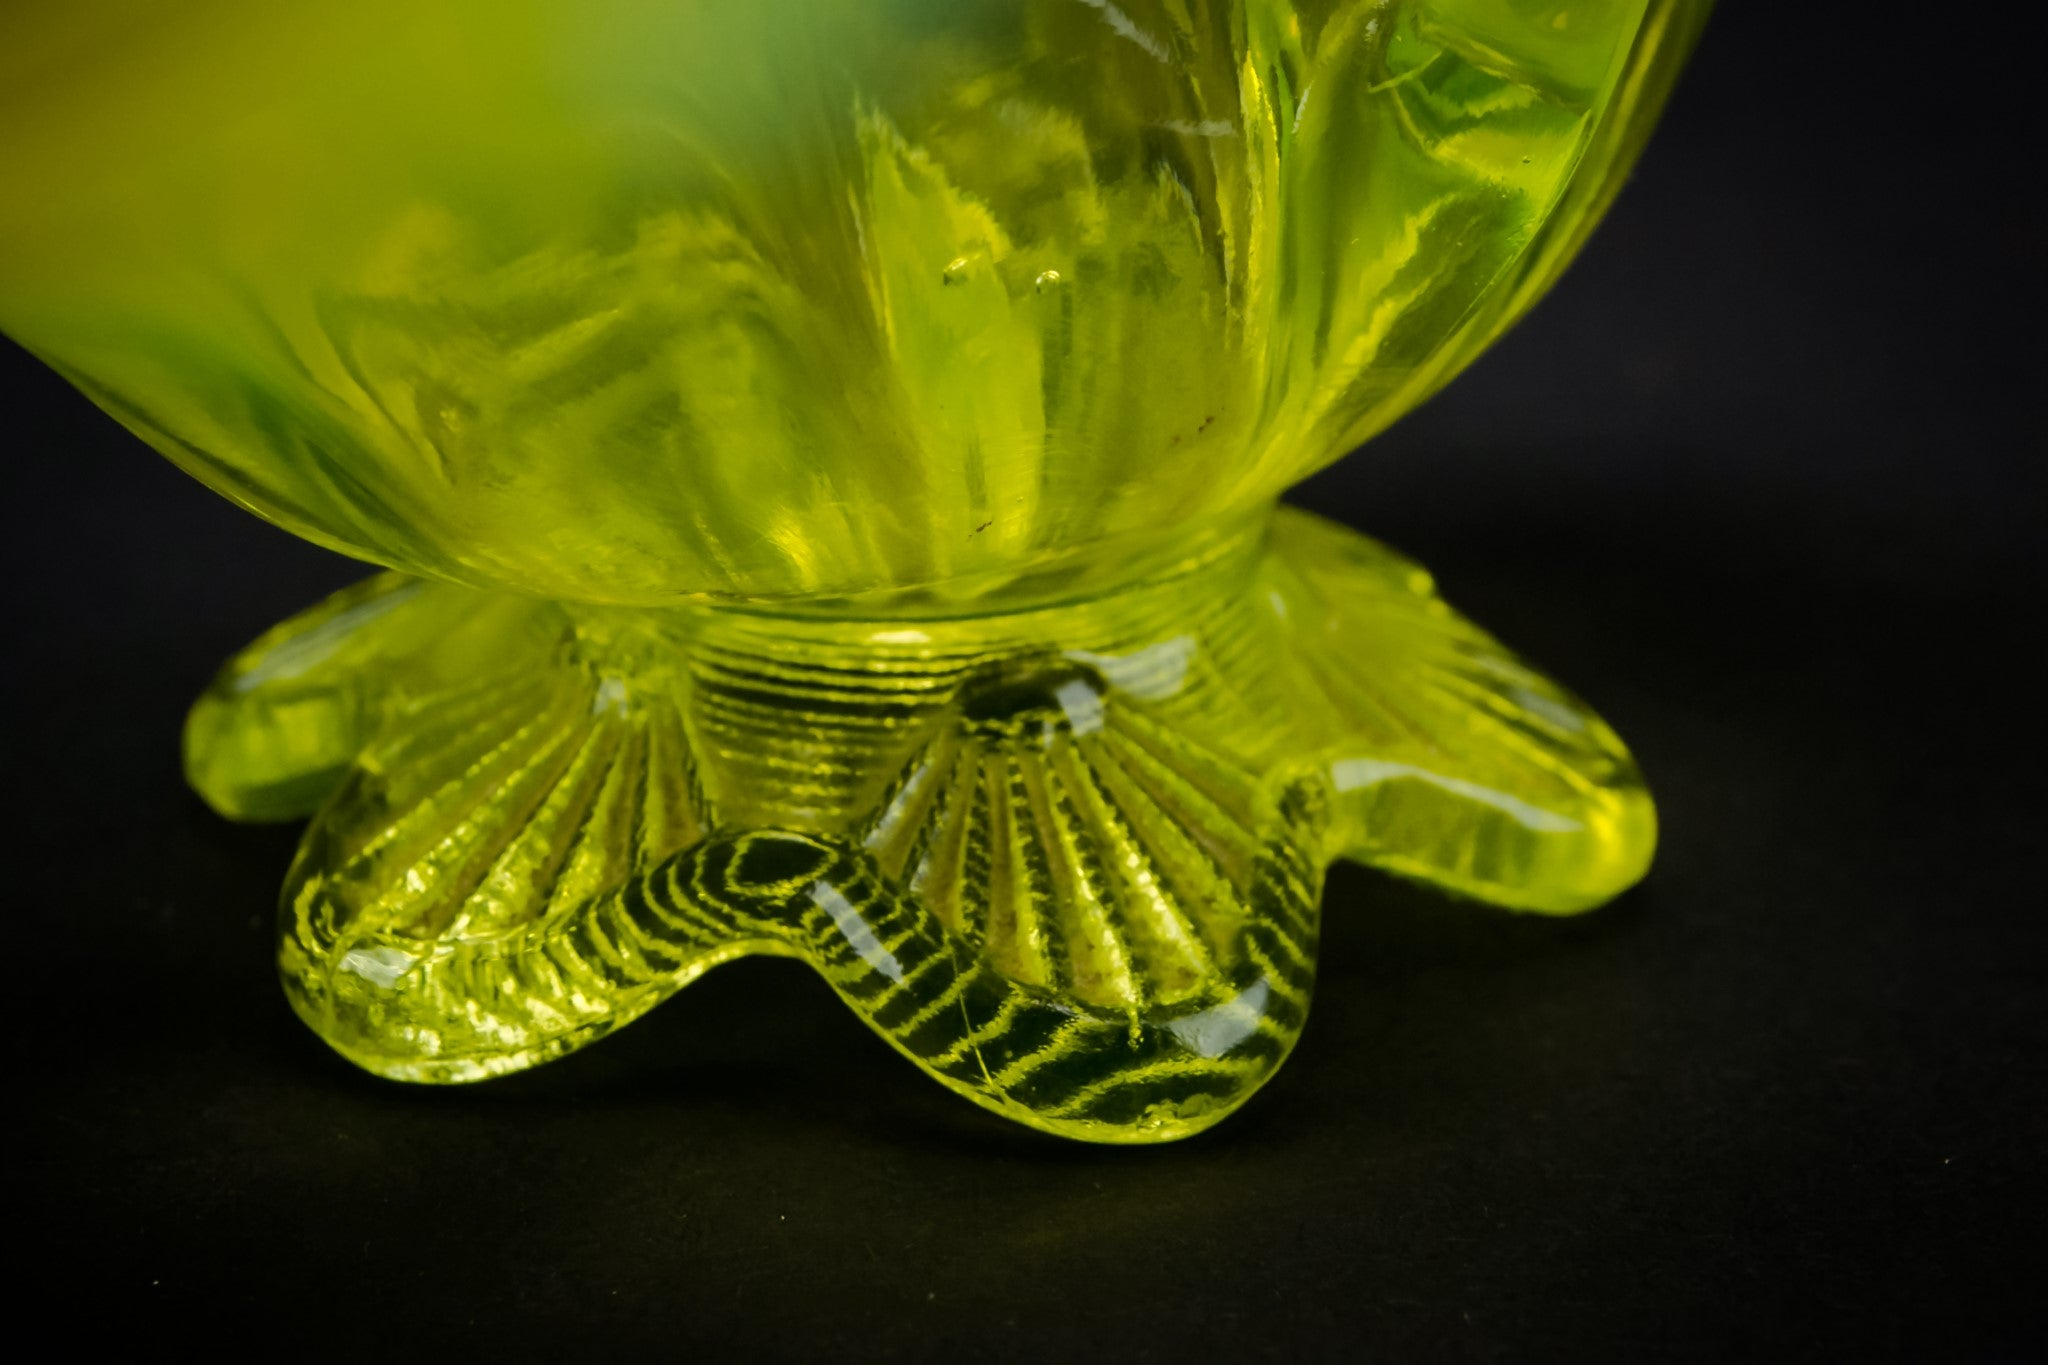 Small decorative glass vase